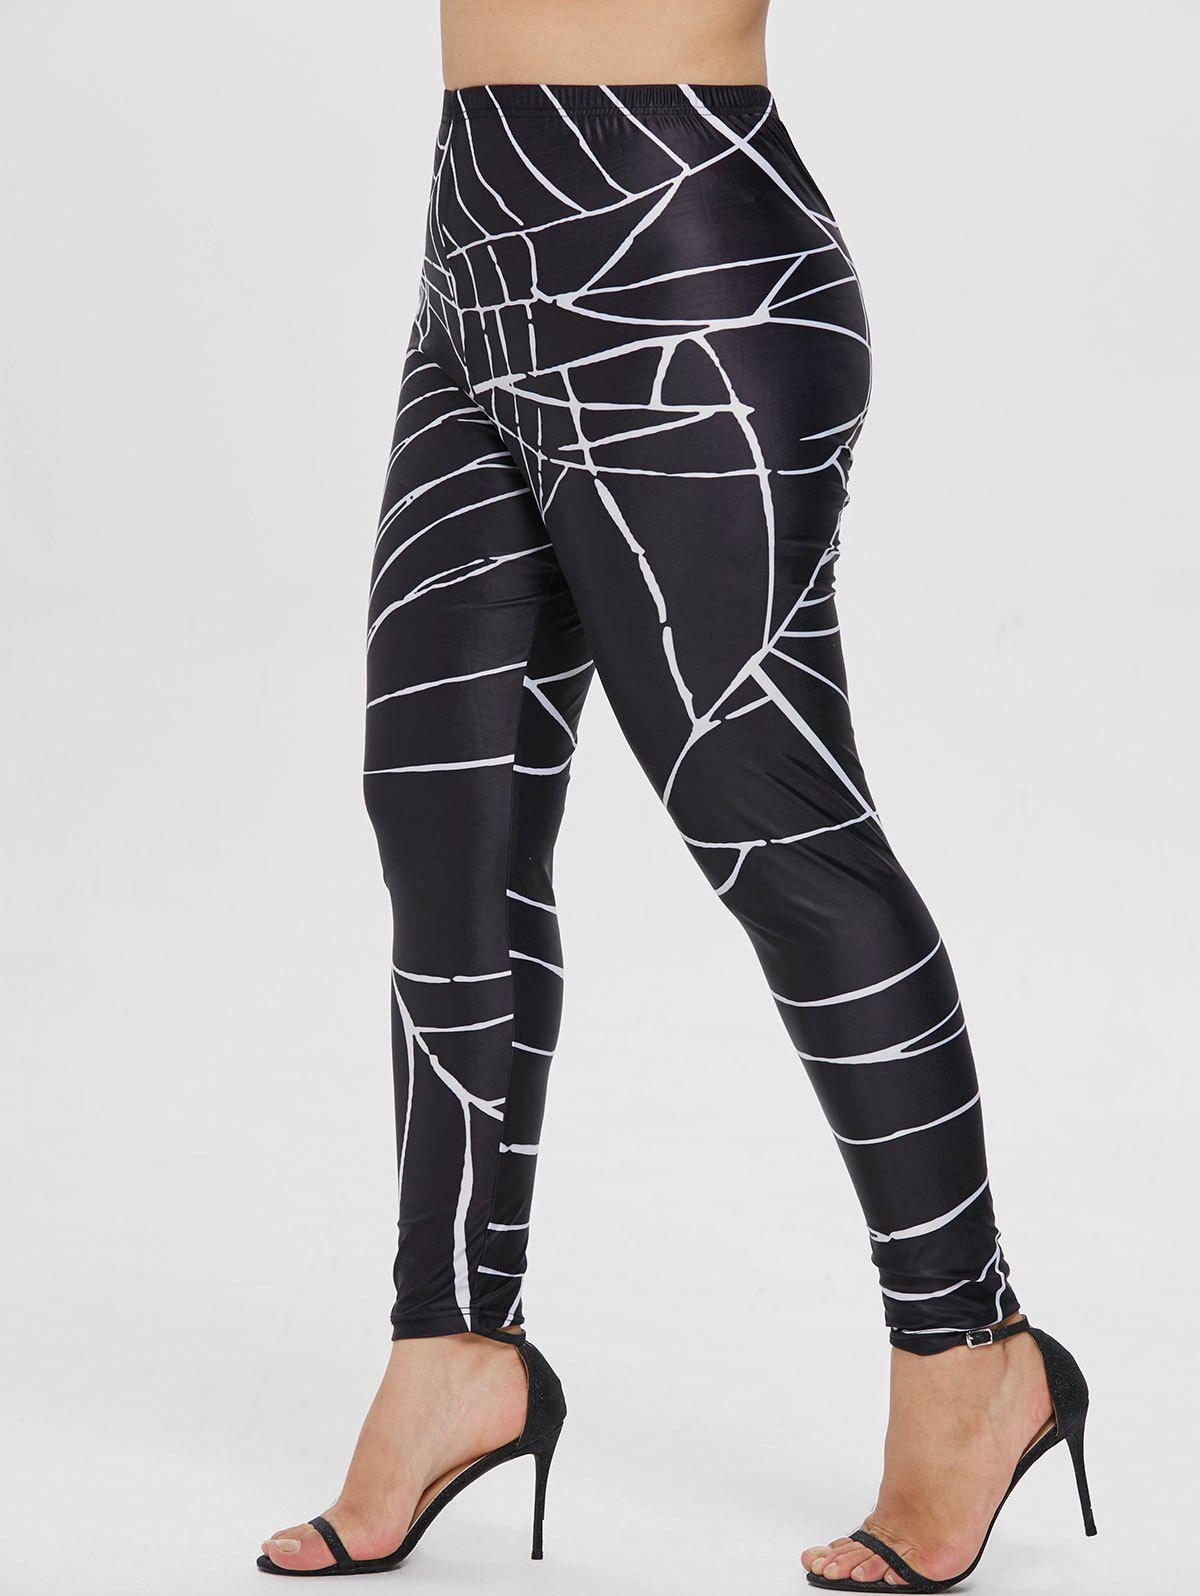 Shop Elastic Waist Plus Size Spider Web Leggings